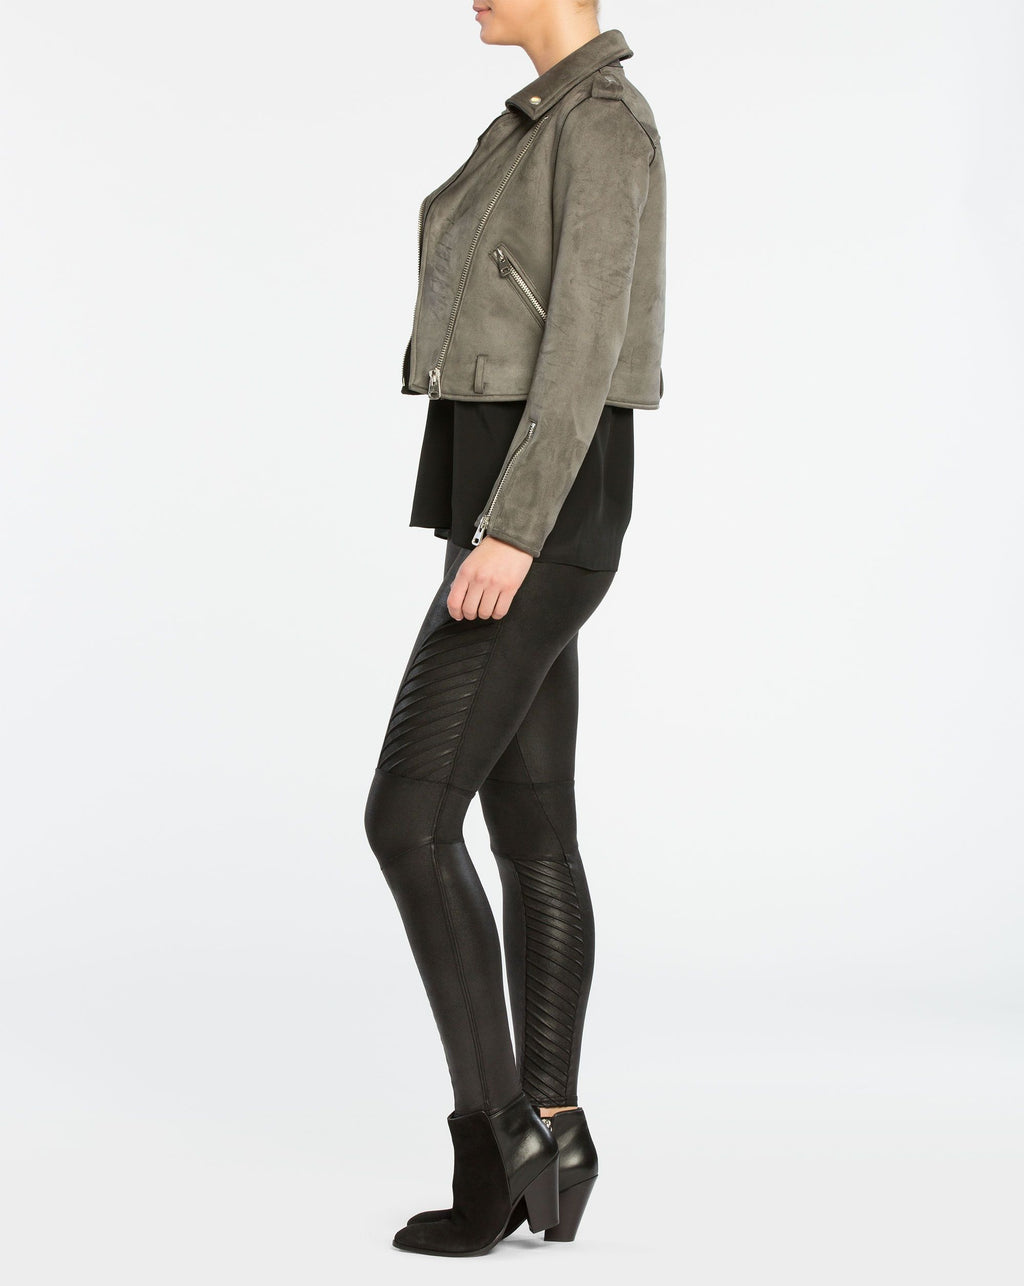 UNIKONCEPT Lifestyle boutique: Model wearing black moto, slimming Spanx leggings in faux leather fabric. The Moto leggings  details include ribbing along legs. View from side.